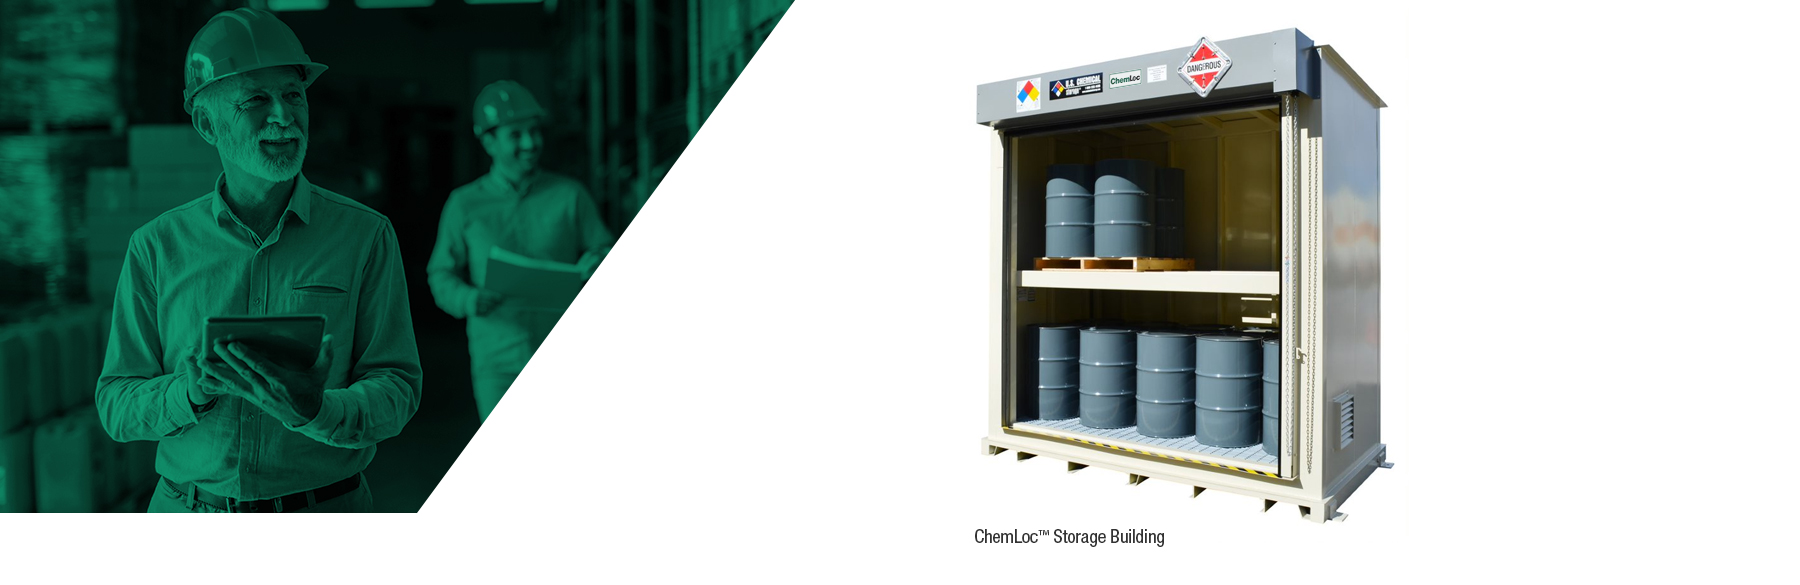 CHEMloc hazardous chemical storage buildings from U.S. Chemical storage provide unparalleled protection for all non fire-rated chemical storage needs.